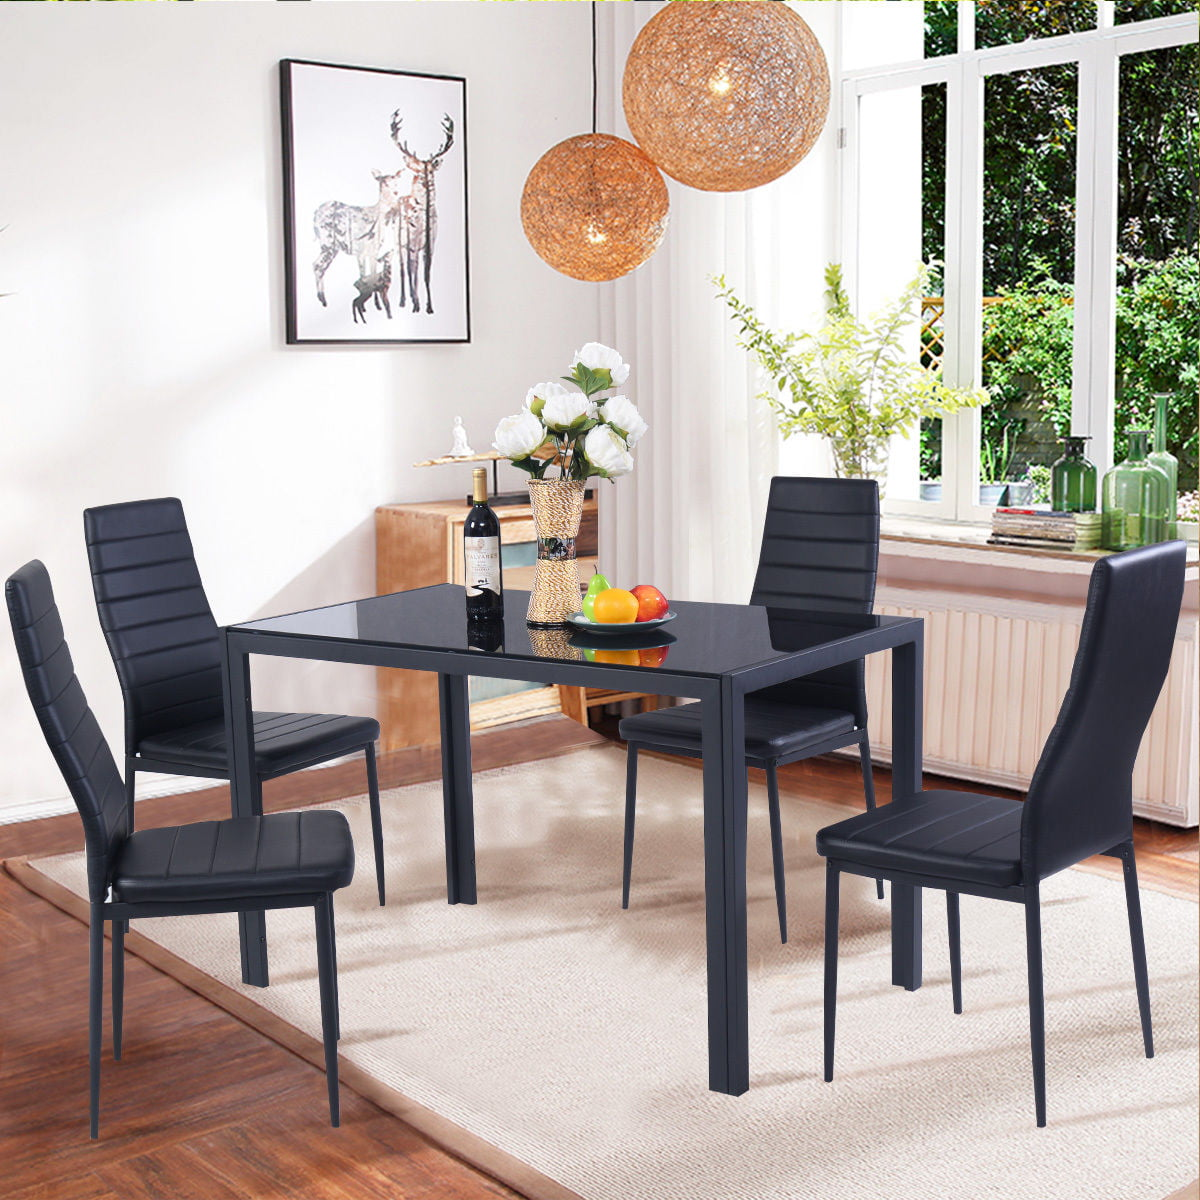 Costway 5 Piece Kitchen Dining Set Glass Metal Table and 4 Chairs Breakfast  Furniture - Walmart.com